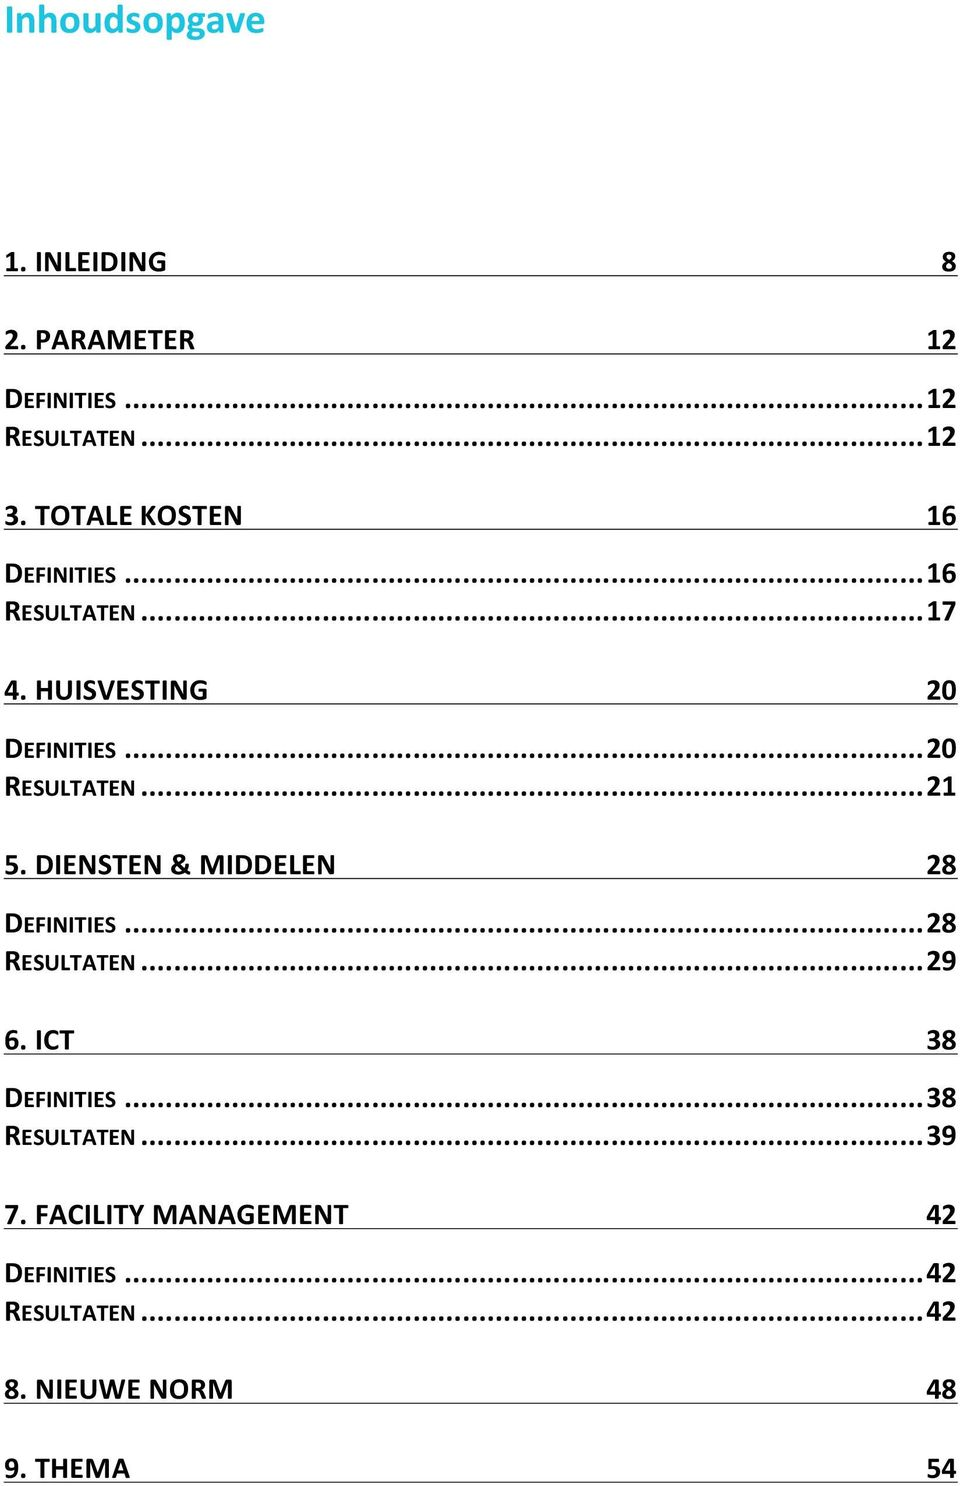 HUISVESTING 20 DEFINITIES...20 RESULTATEN...21 5.DIENSTEN&MIDDELEN 28 DEFINITIES...28 RESULTATEN.